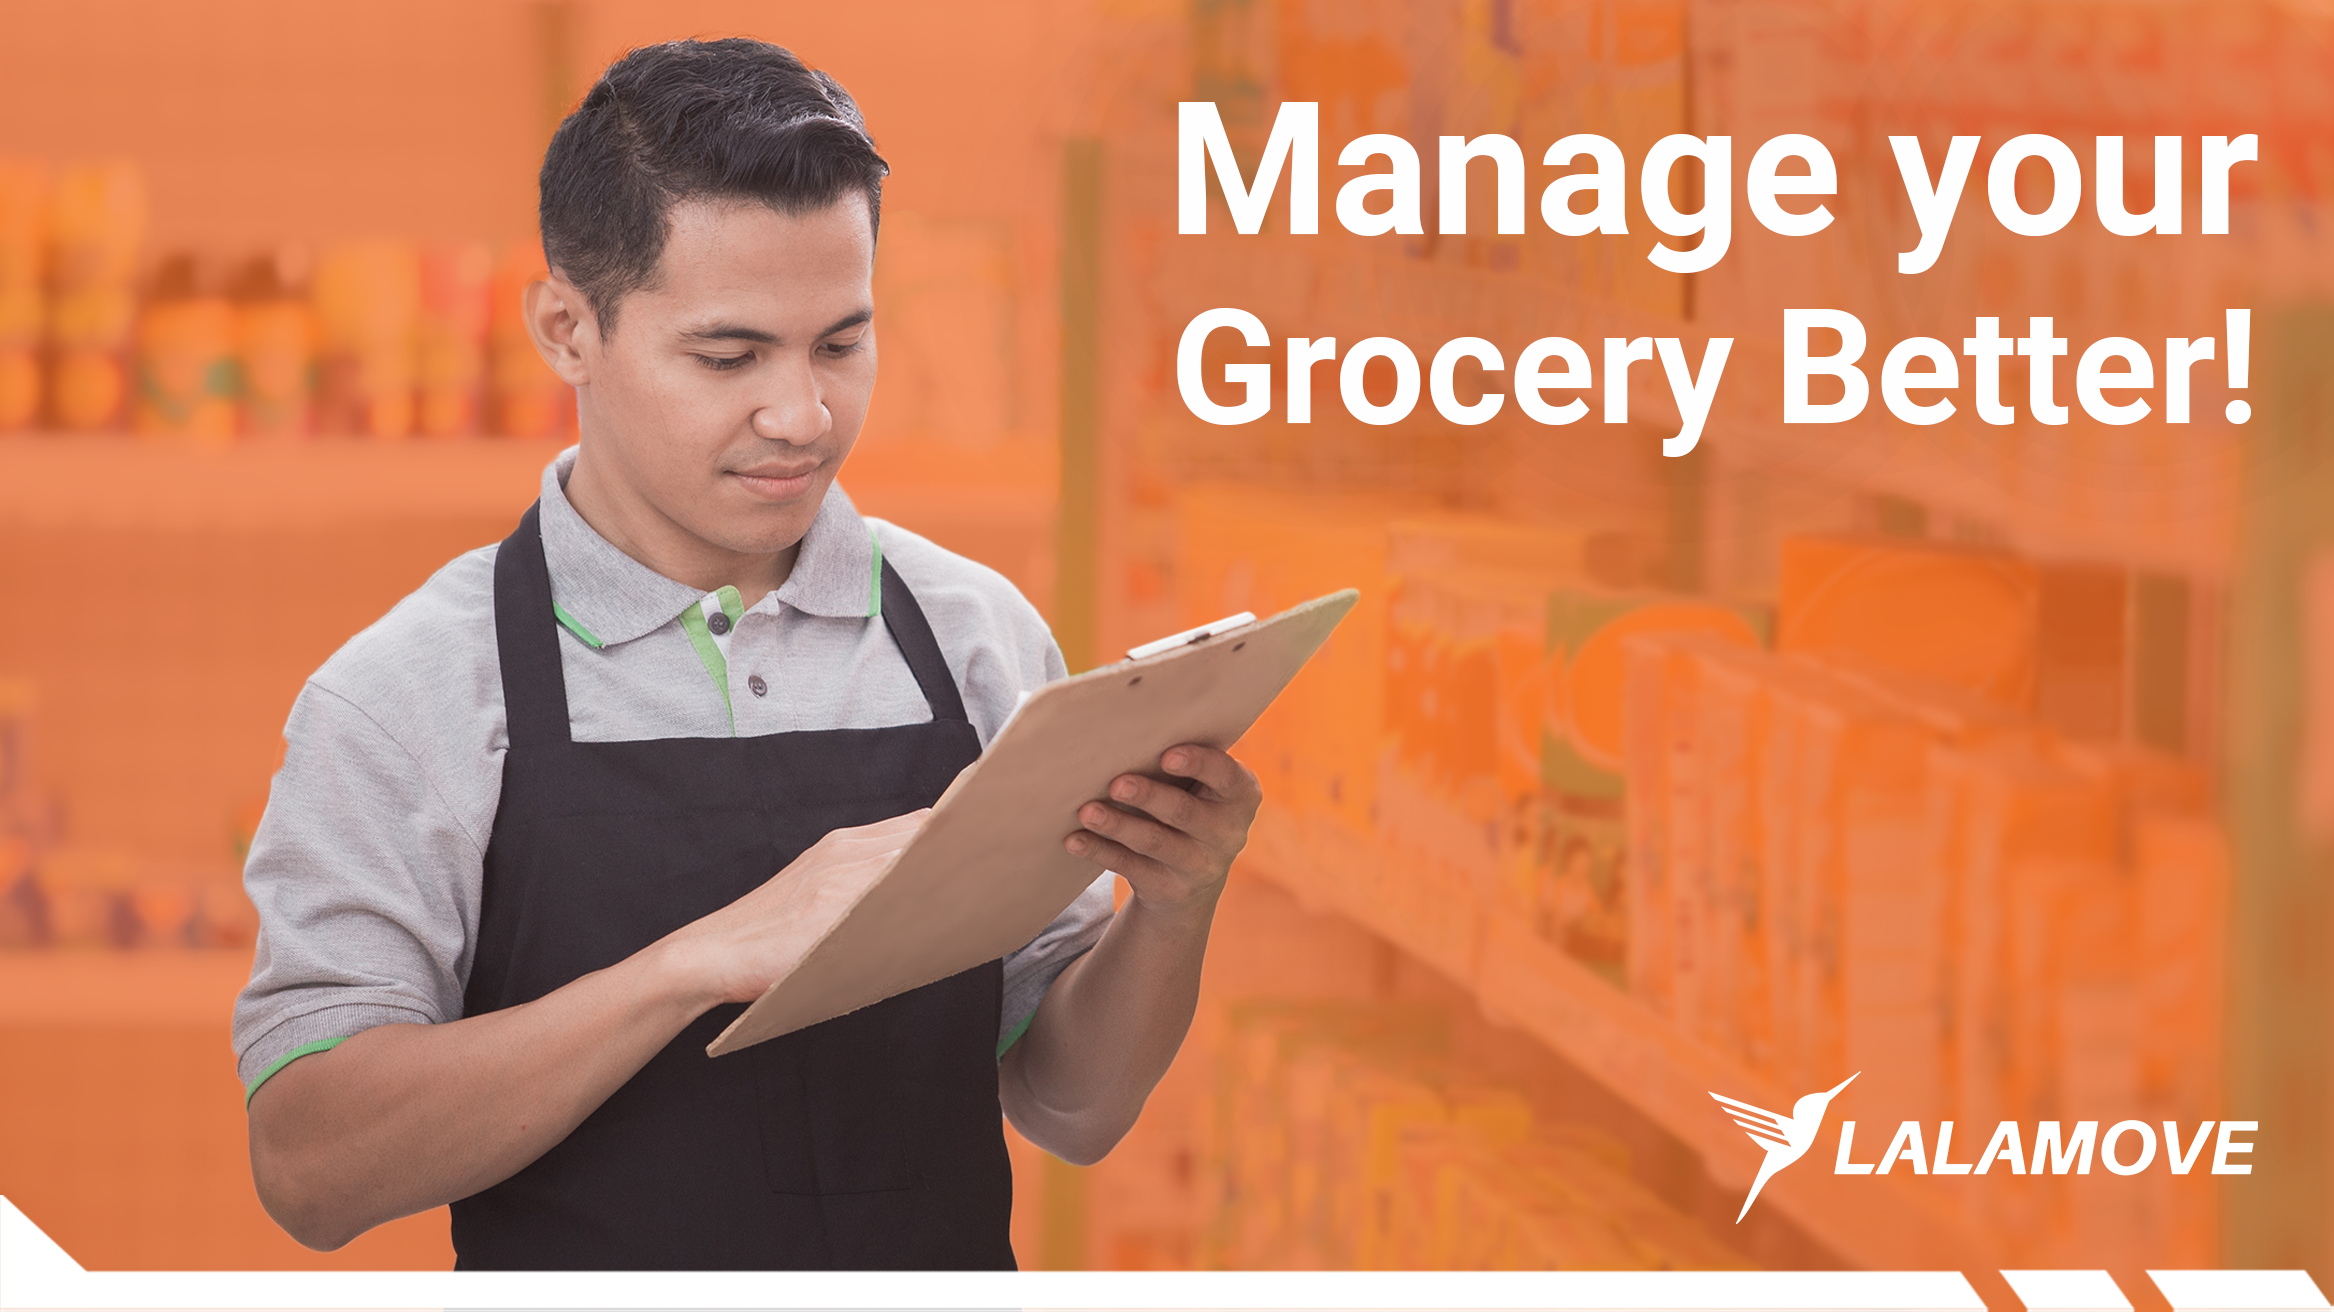 Tips on How to Manage a Grocery Business Better